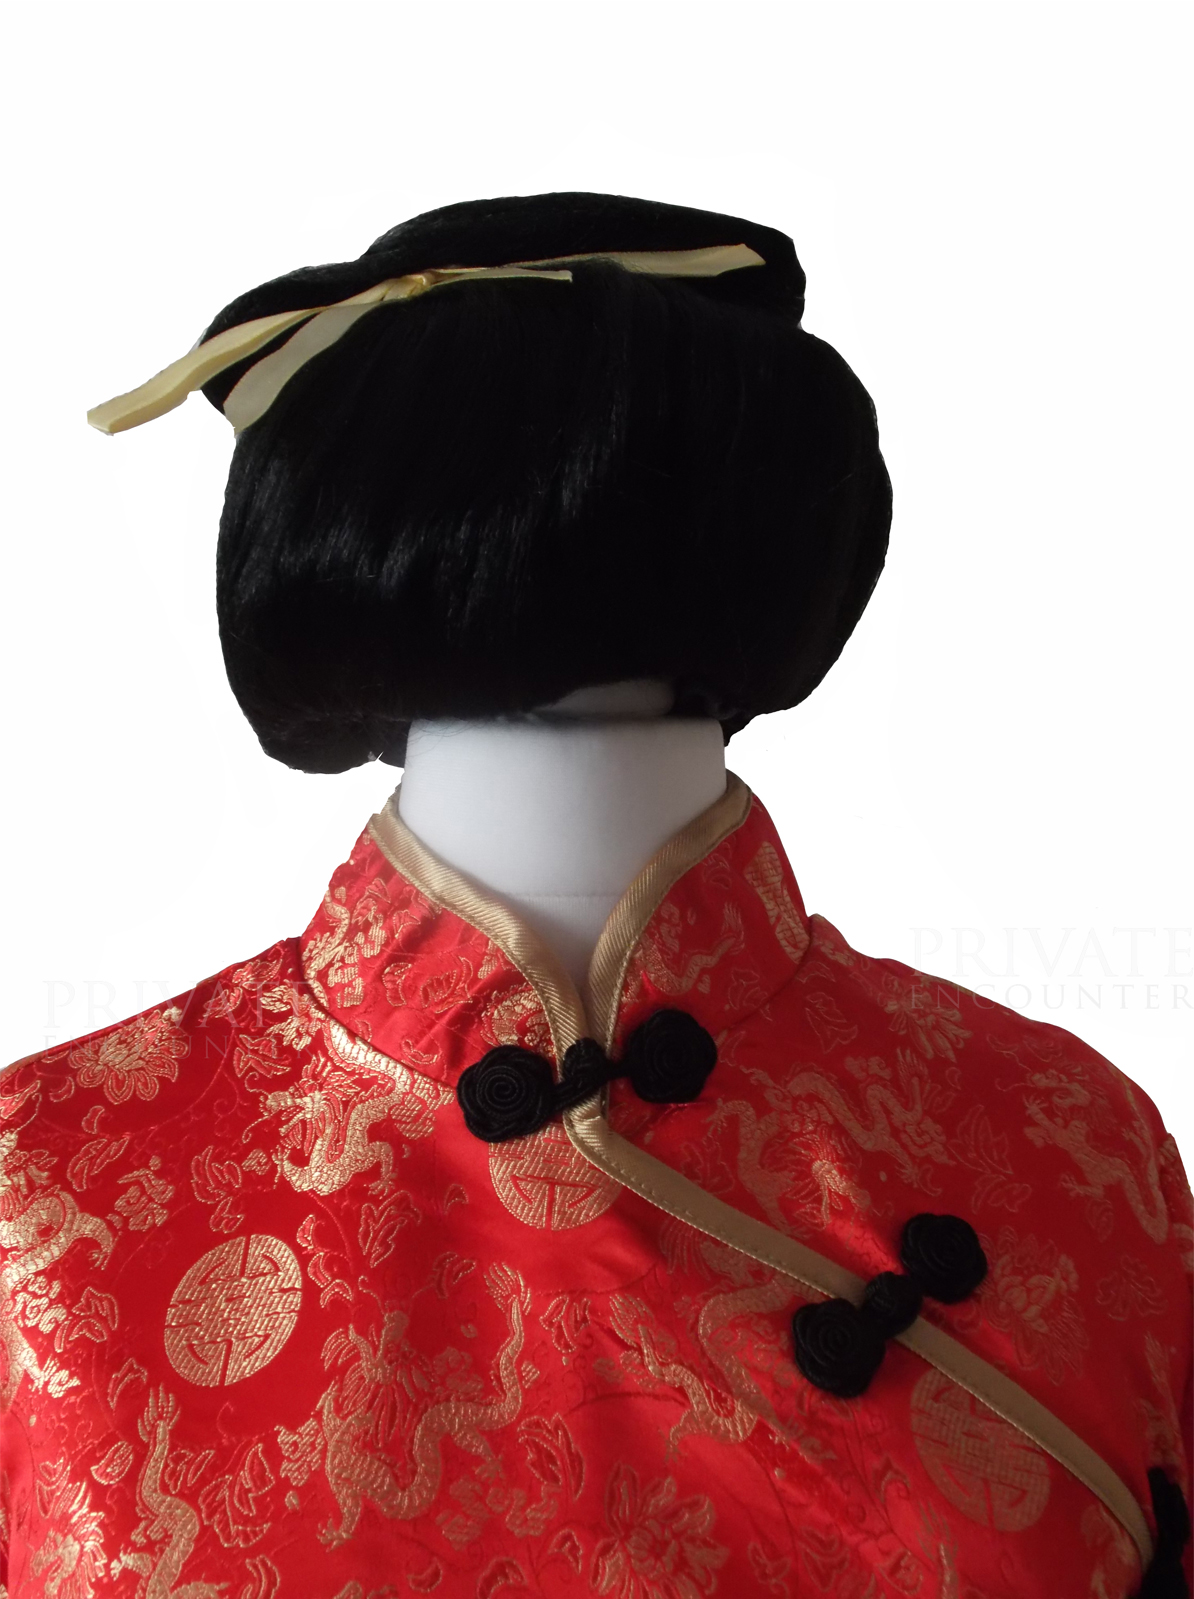 Geisha Outfit and Wig  91d8d6726f20